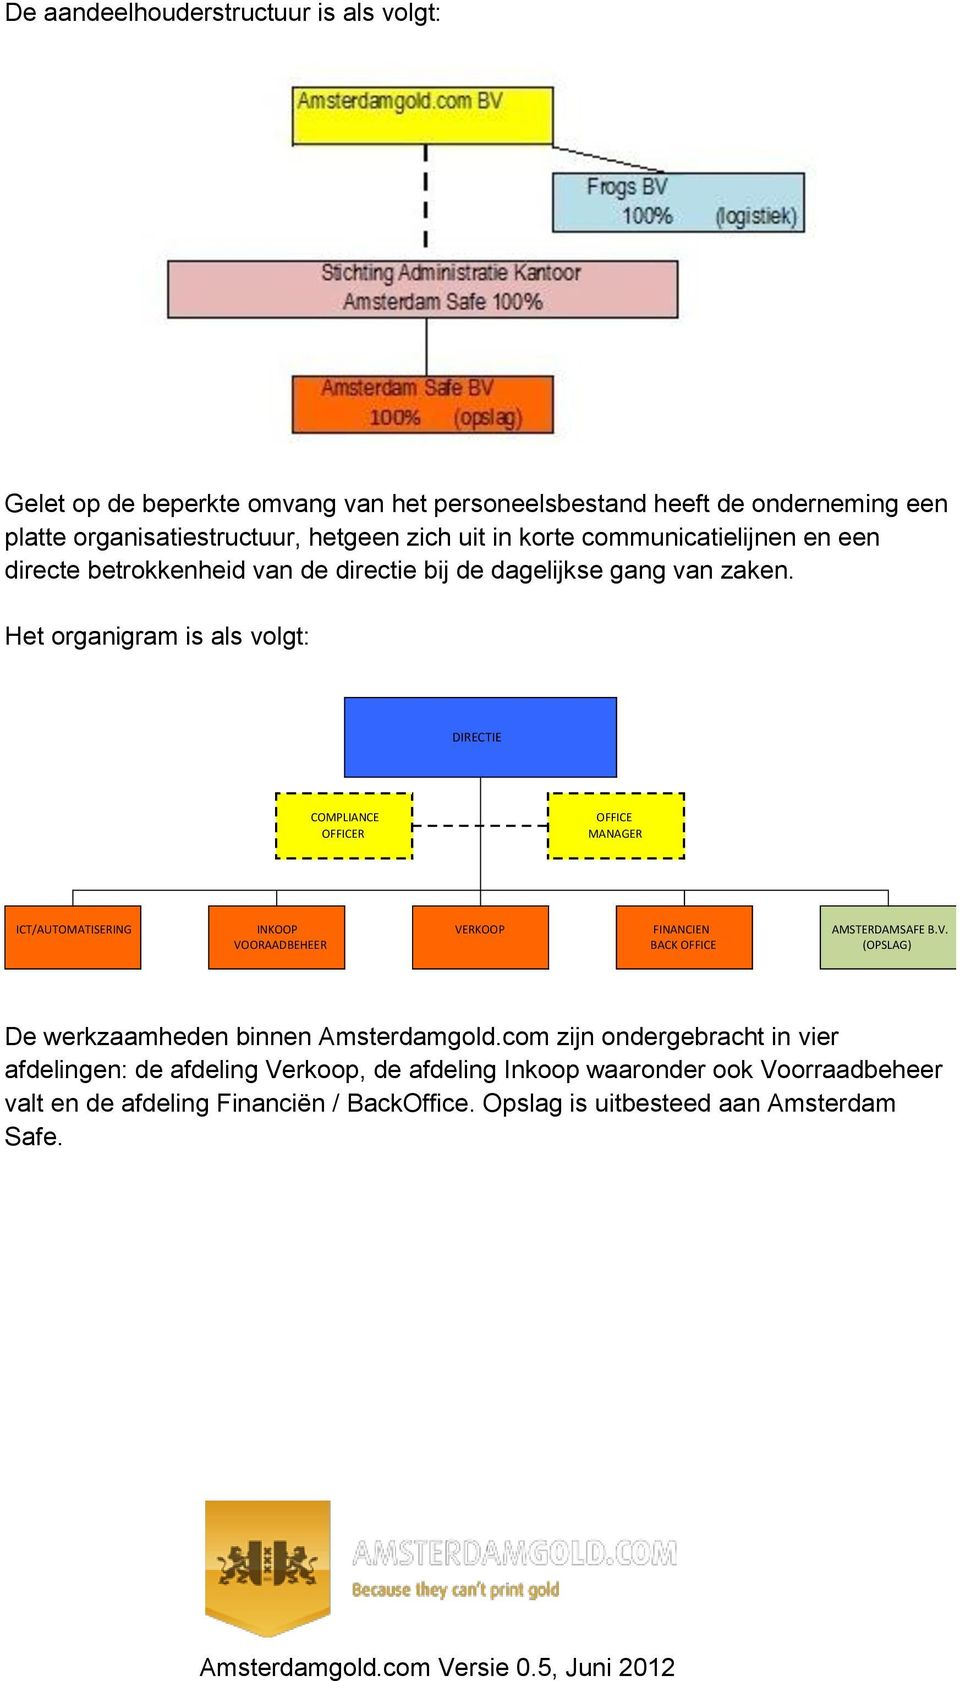 Het organigram is als volgt: DIRECTIE COMPLIANCE OFFICE OFFICER MANAGER ICT/AUTOMATISERING INKOOP VE